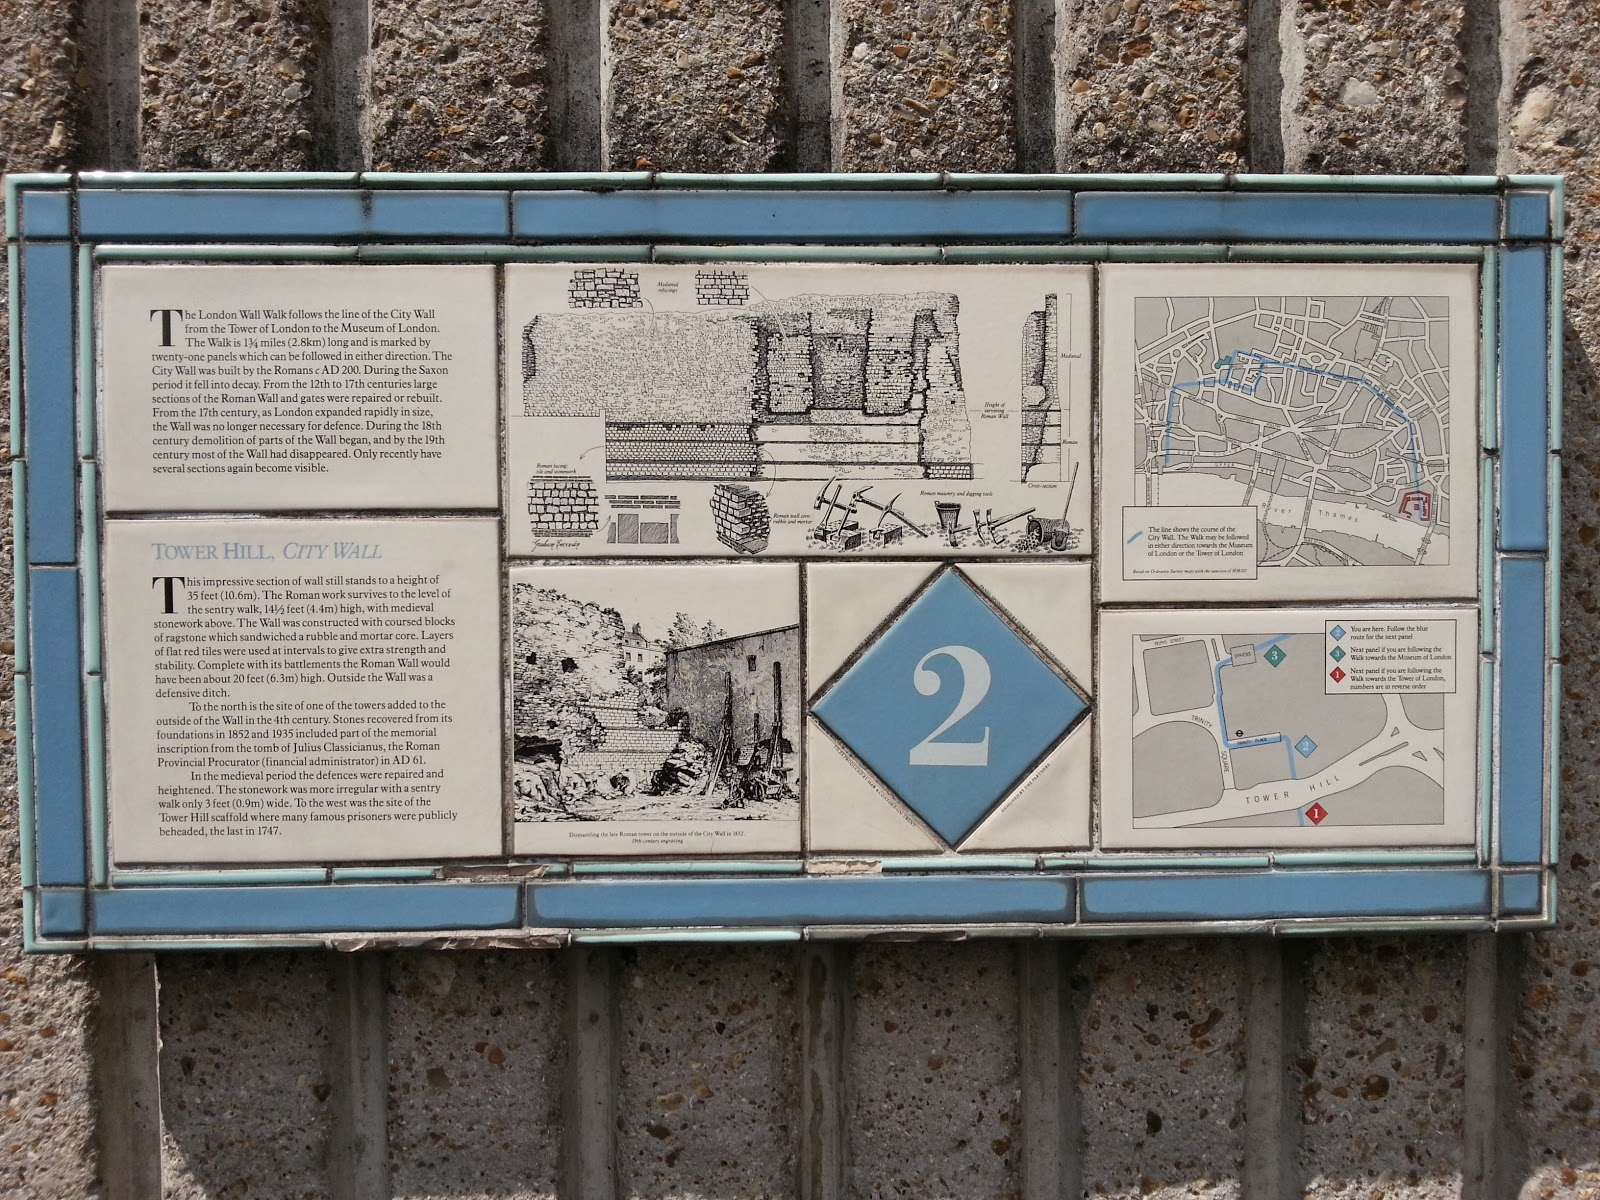 Plaque No.2 from the London Wall Walk